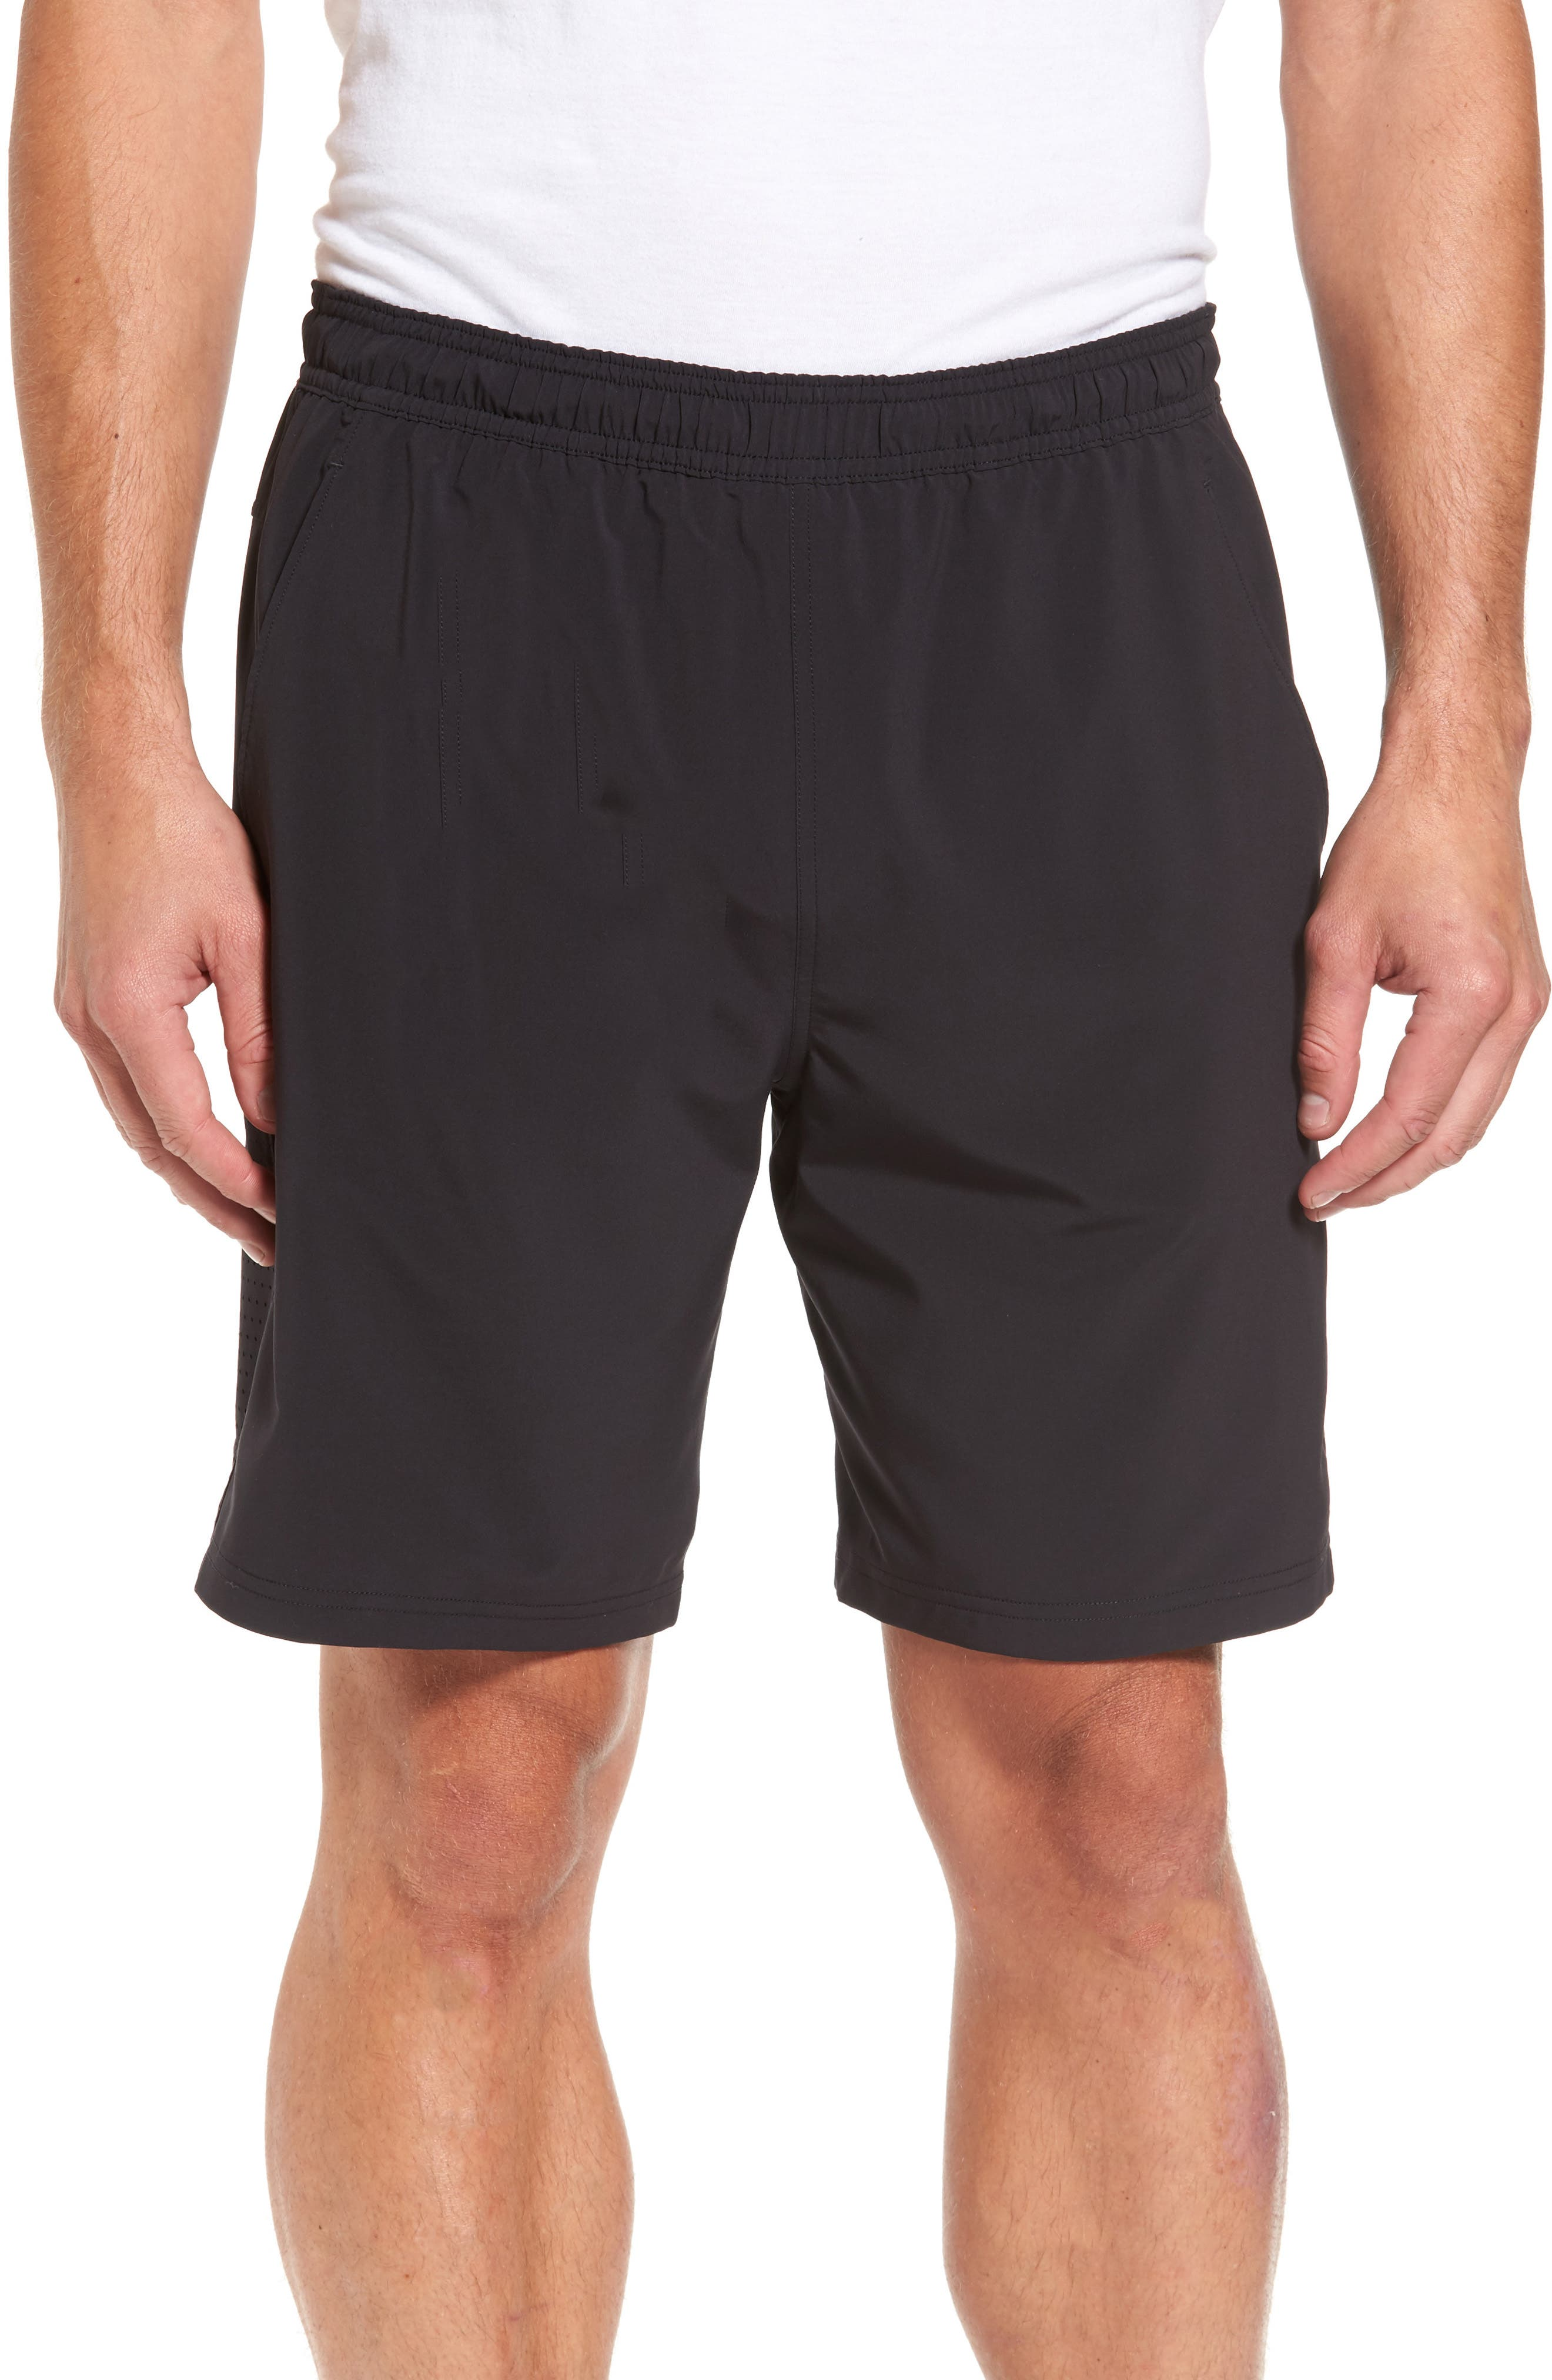 Zella Graphite Core Athletic Shorts